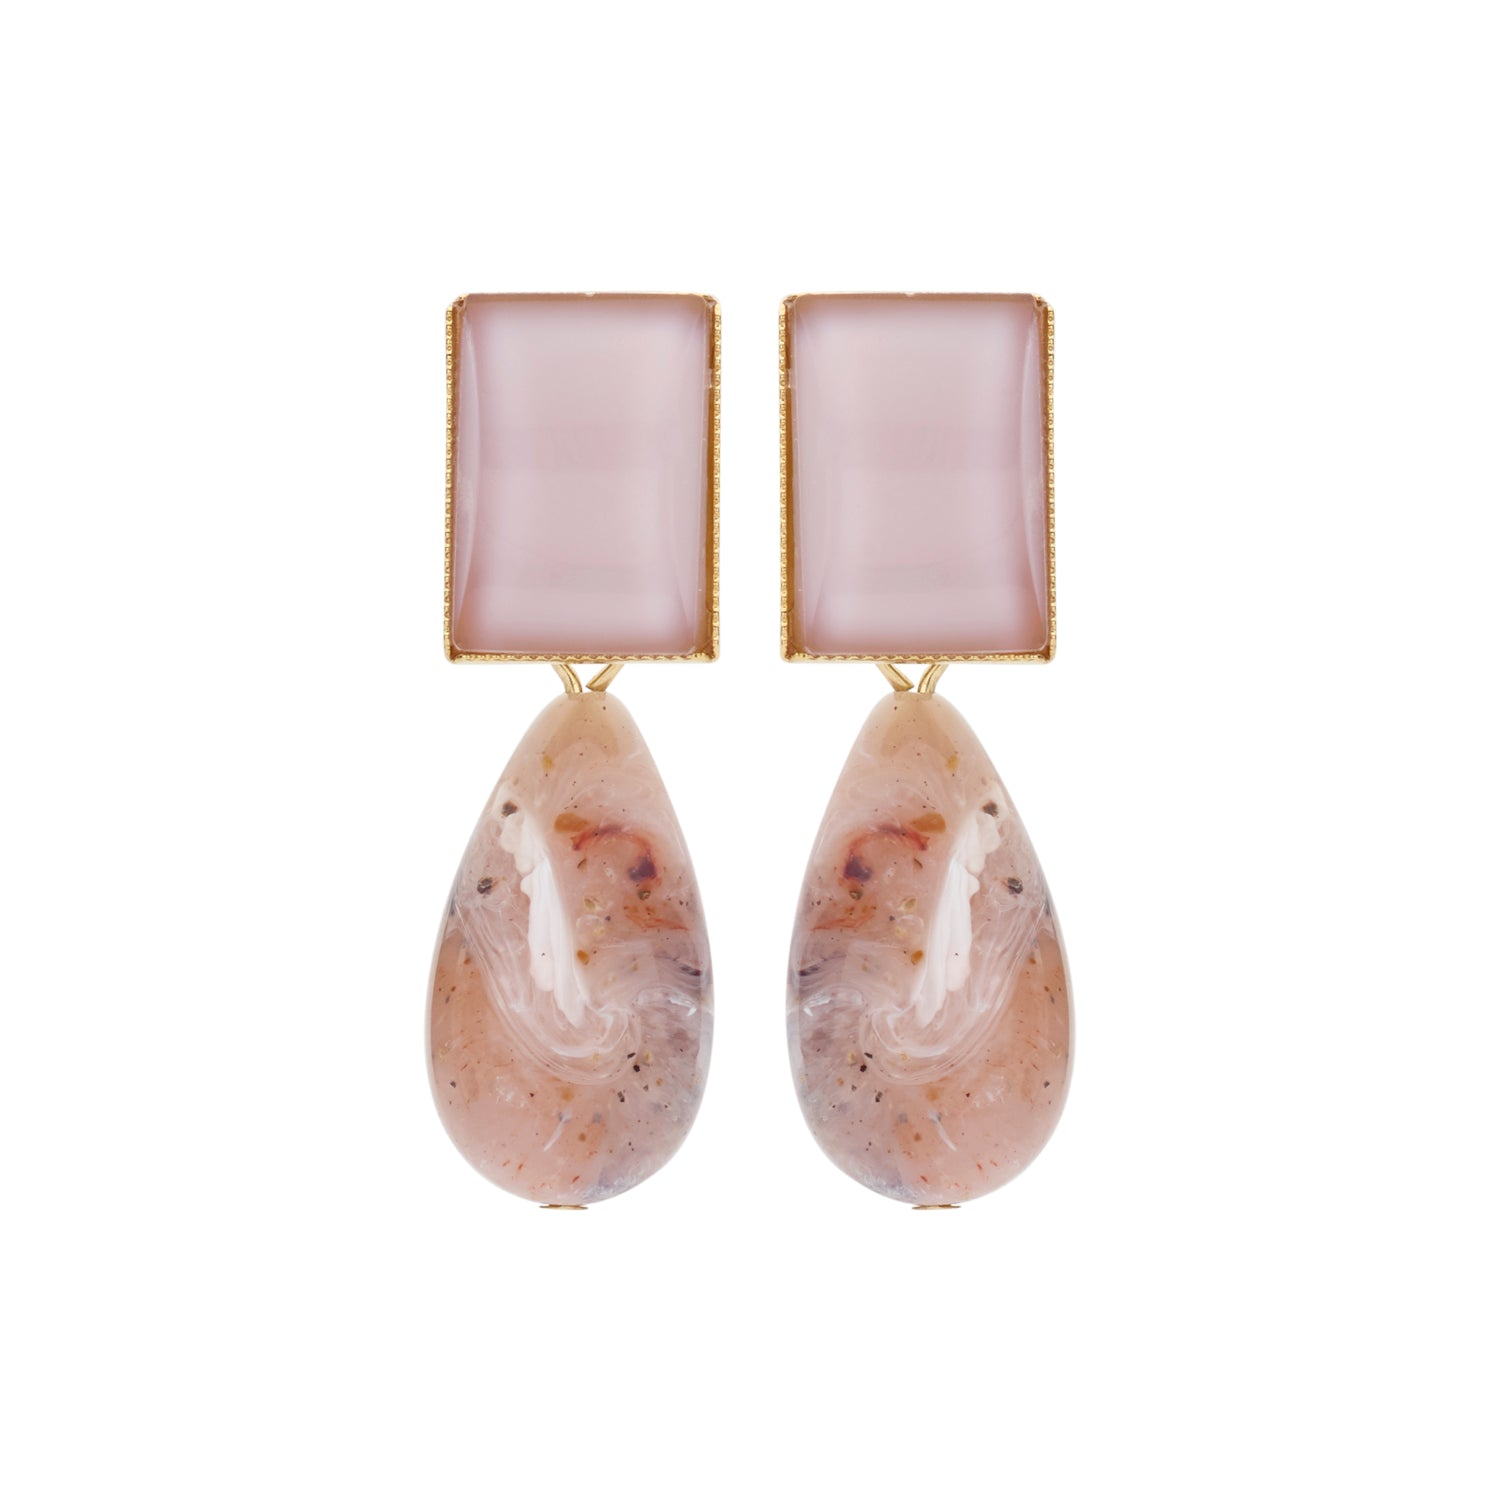 New Playa nude earrings - Souvenirs de Pomme